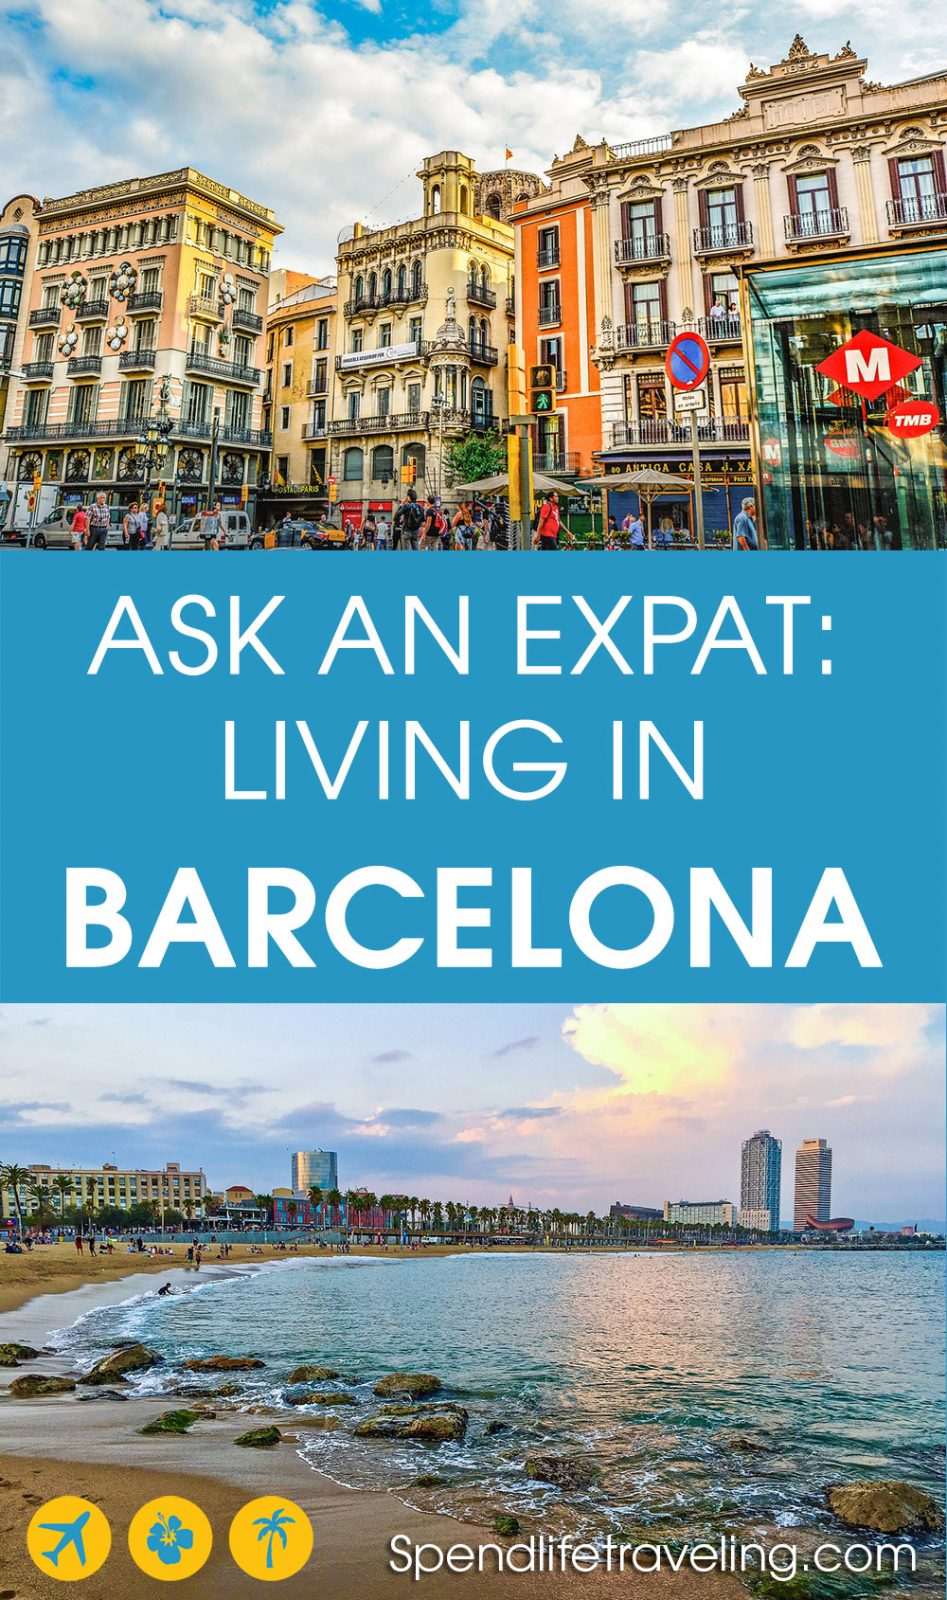 #Barcelona is a popular city for people to move to, from all over the world. But what is life in Barcelona really like? Check out this interview about moving to and living in this beautiful Spanish city. #expat #moveabroad #movetoSpain #liveabroad #workabroad